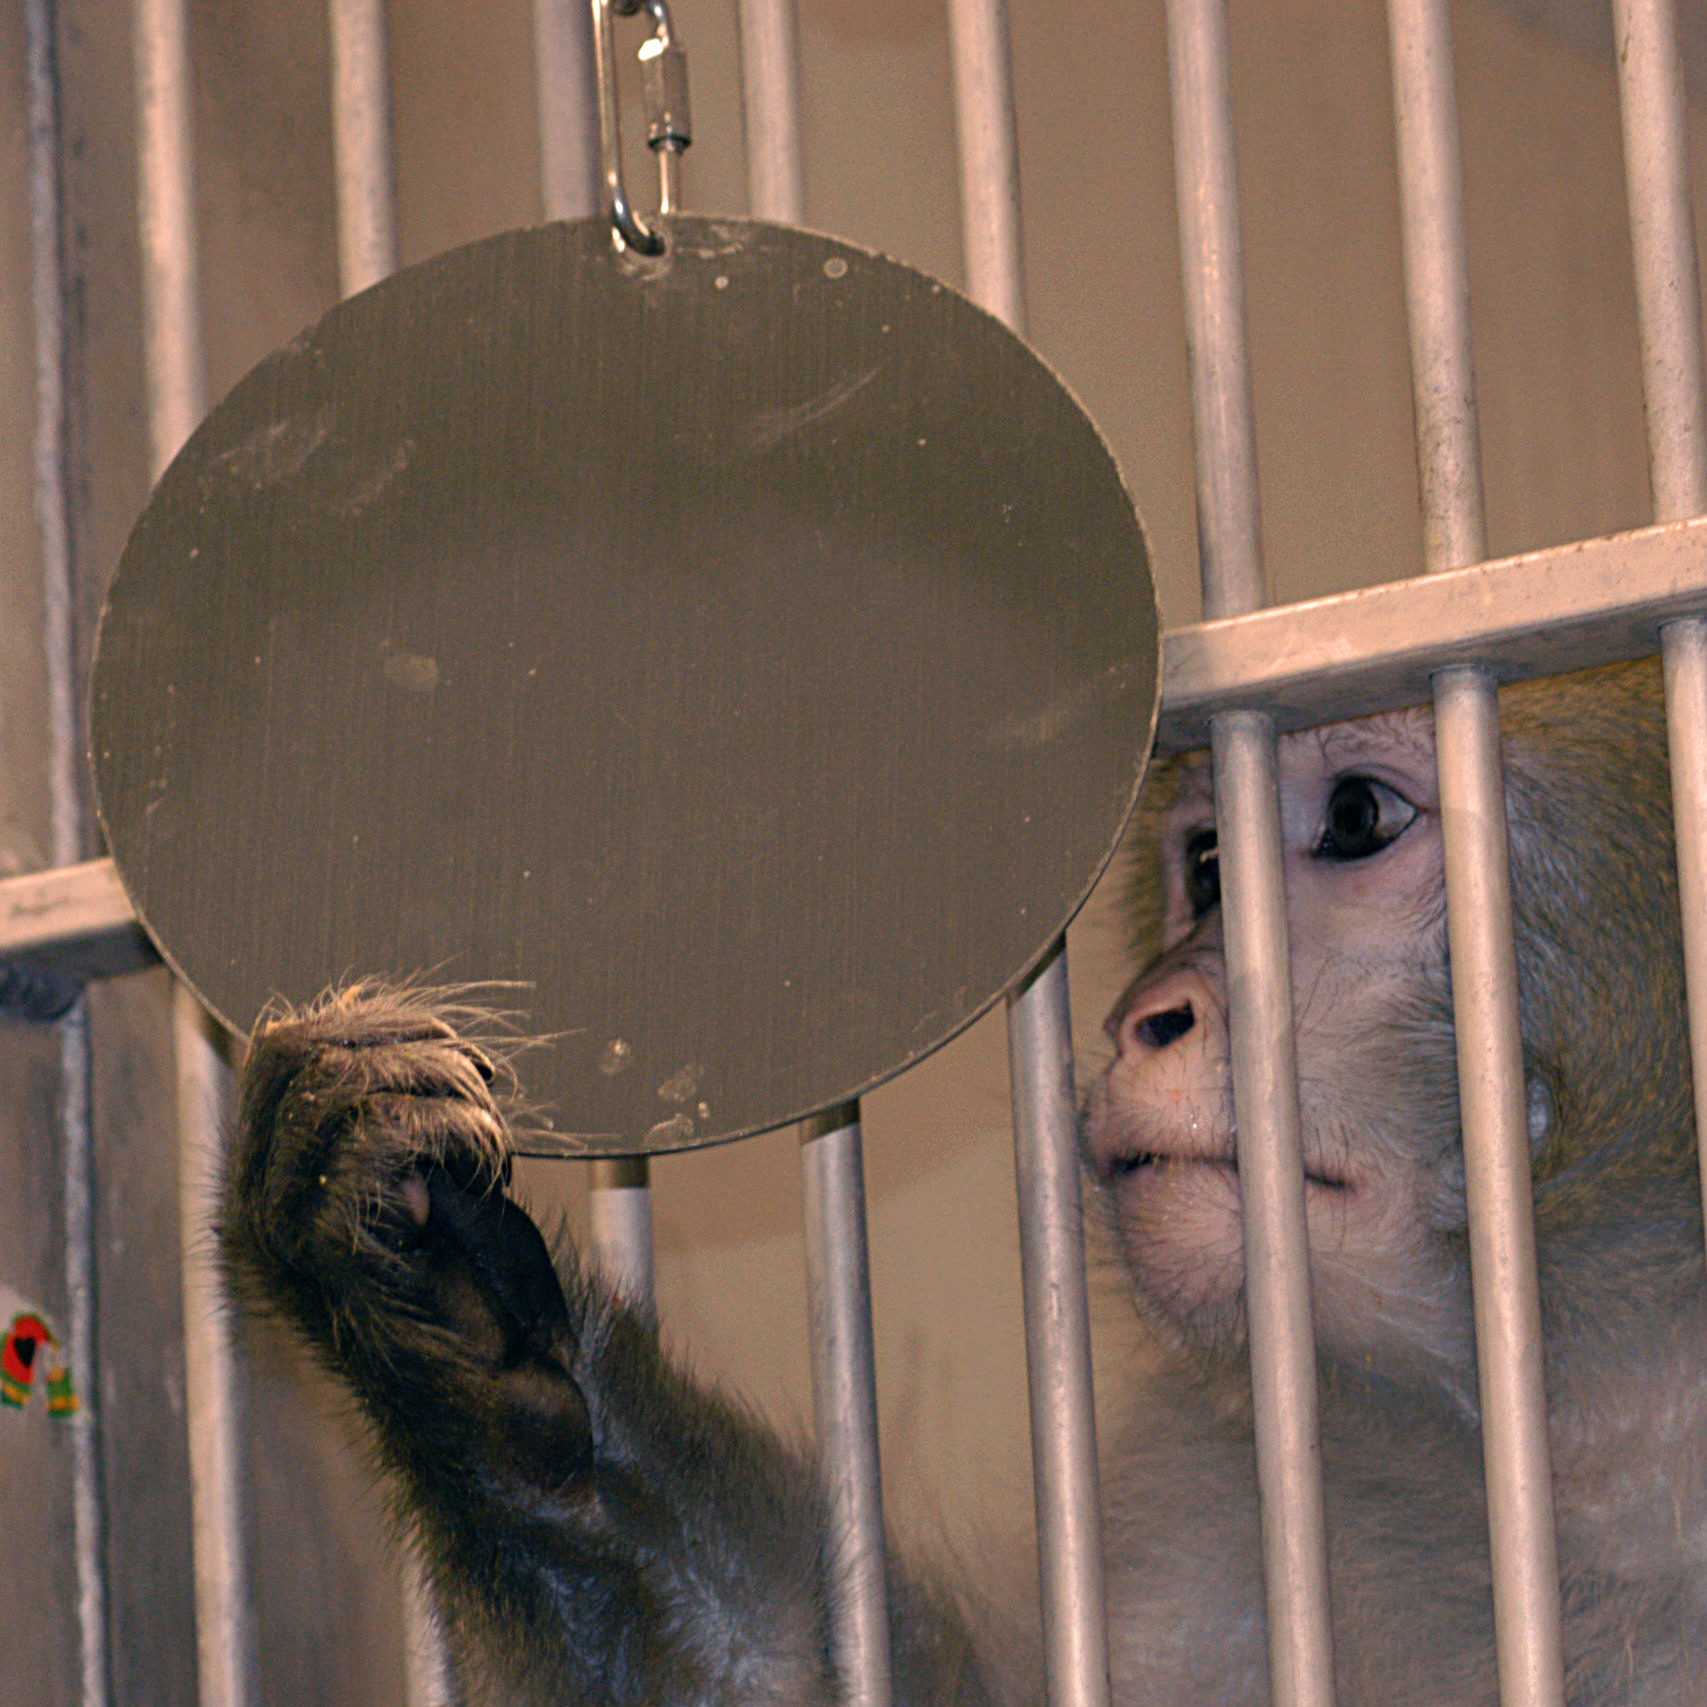 Monkey with mirror